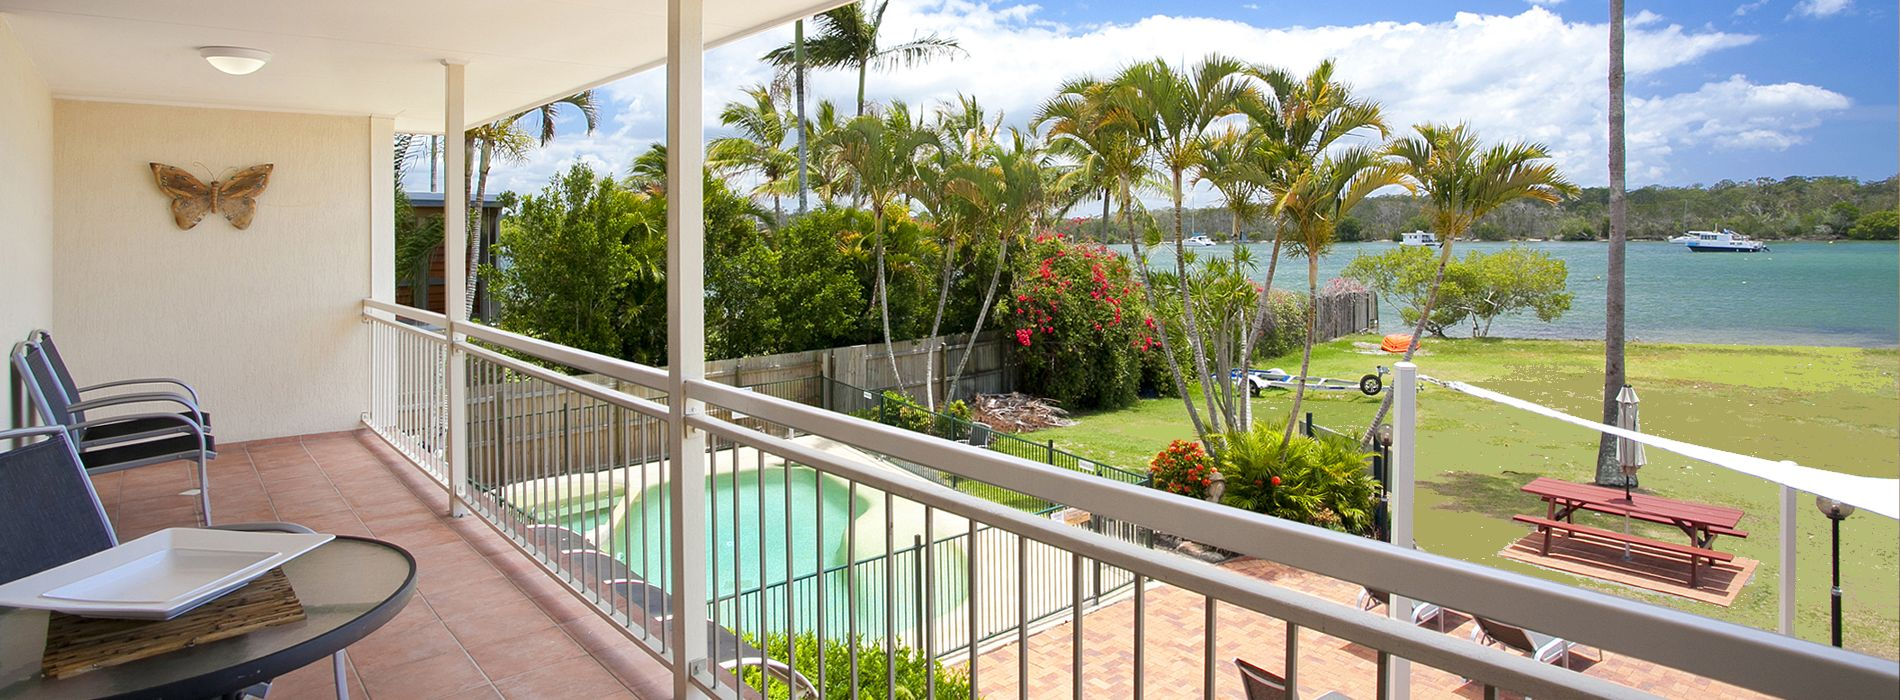 Value For Money Noosa Riverfront Accommodation